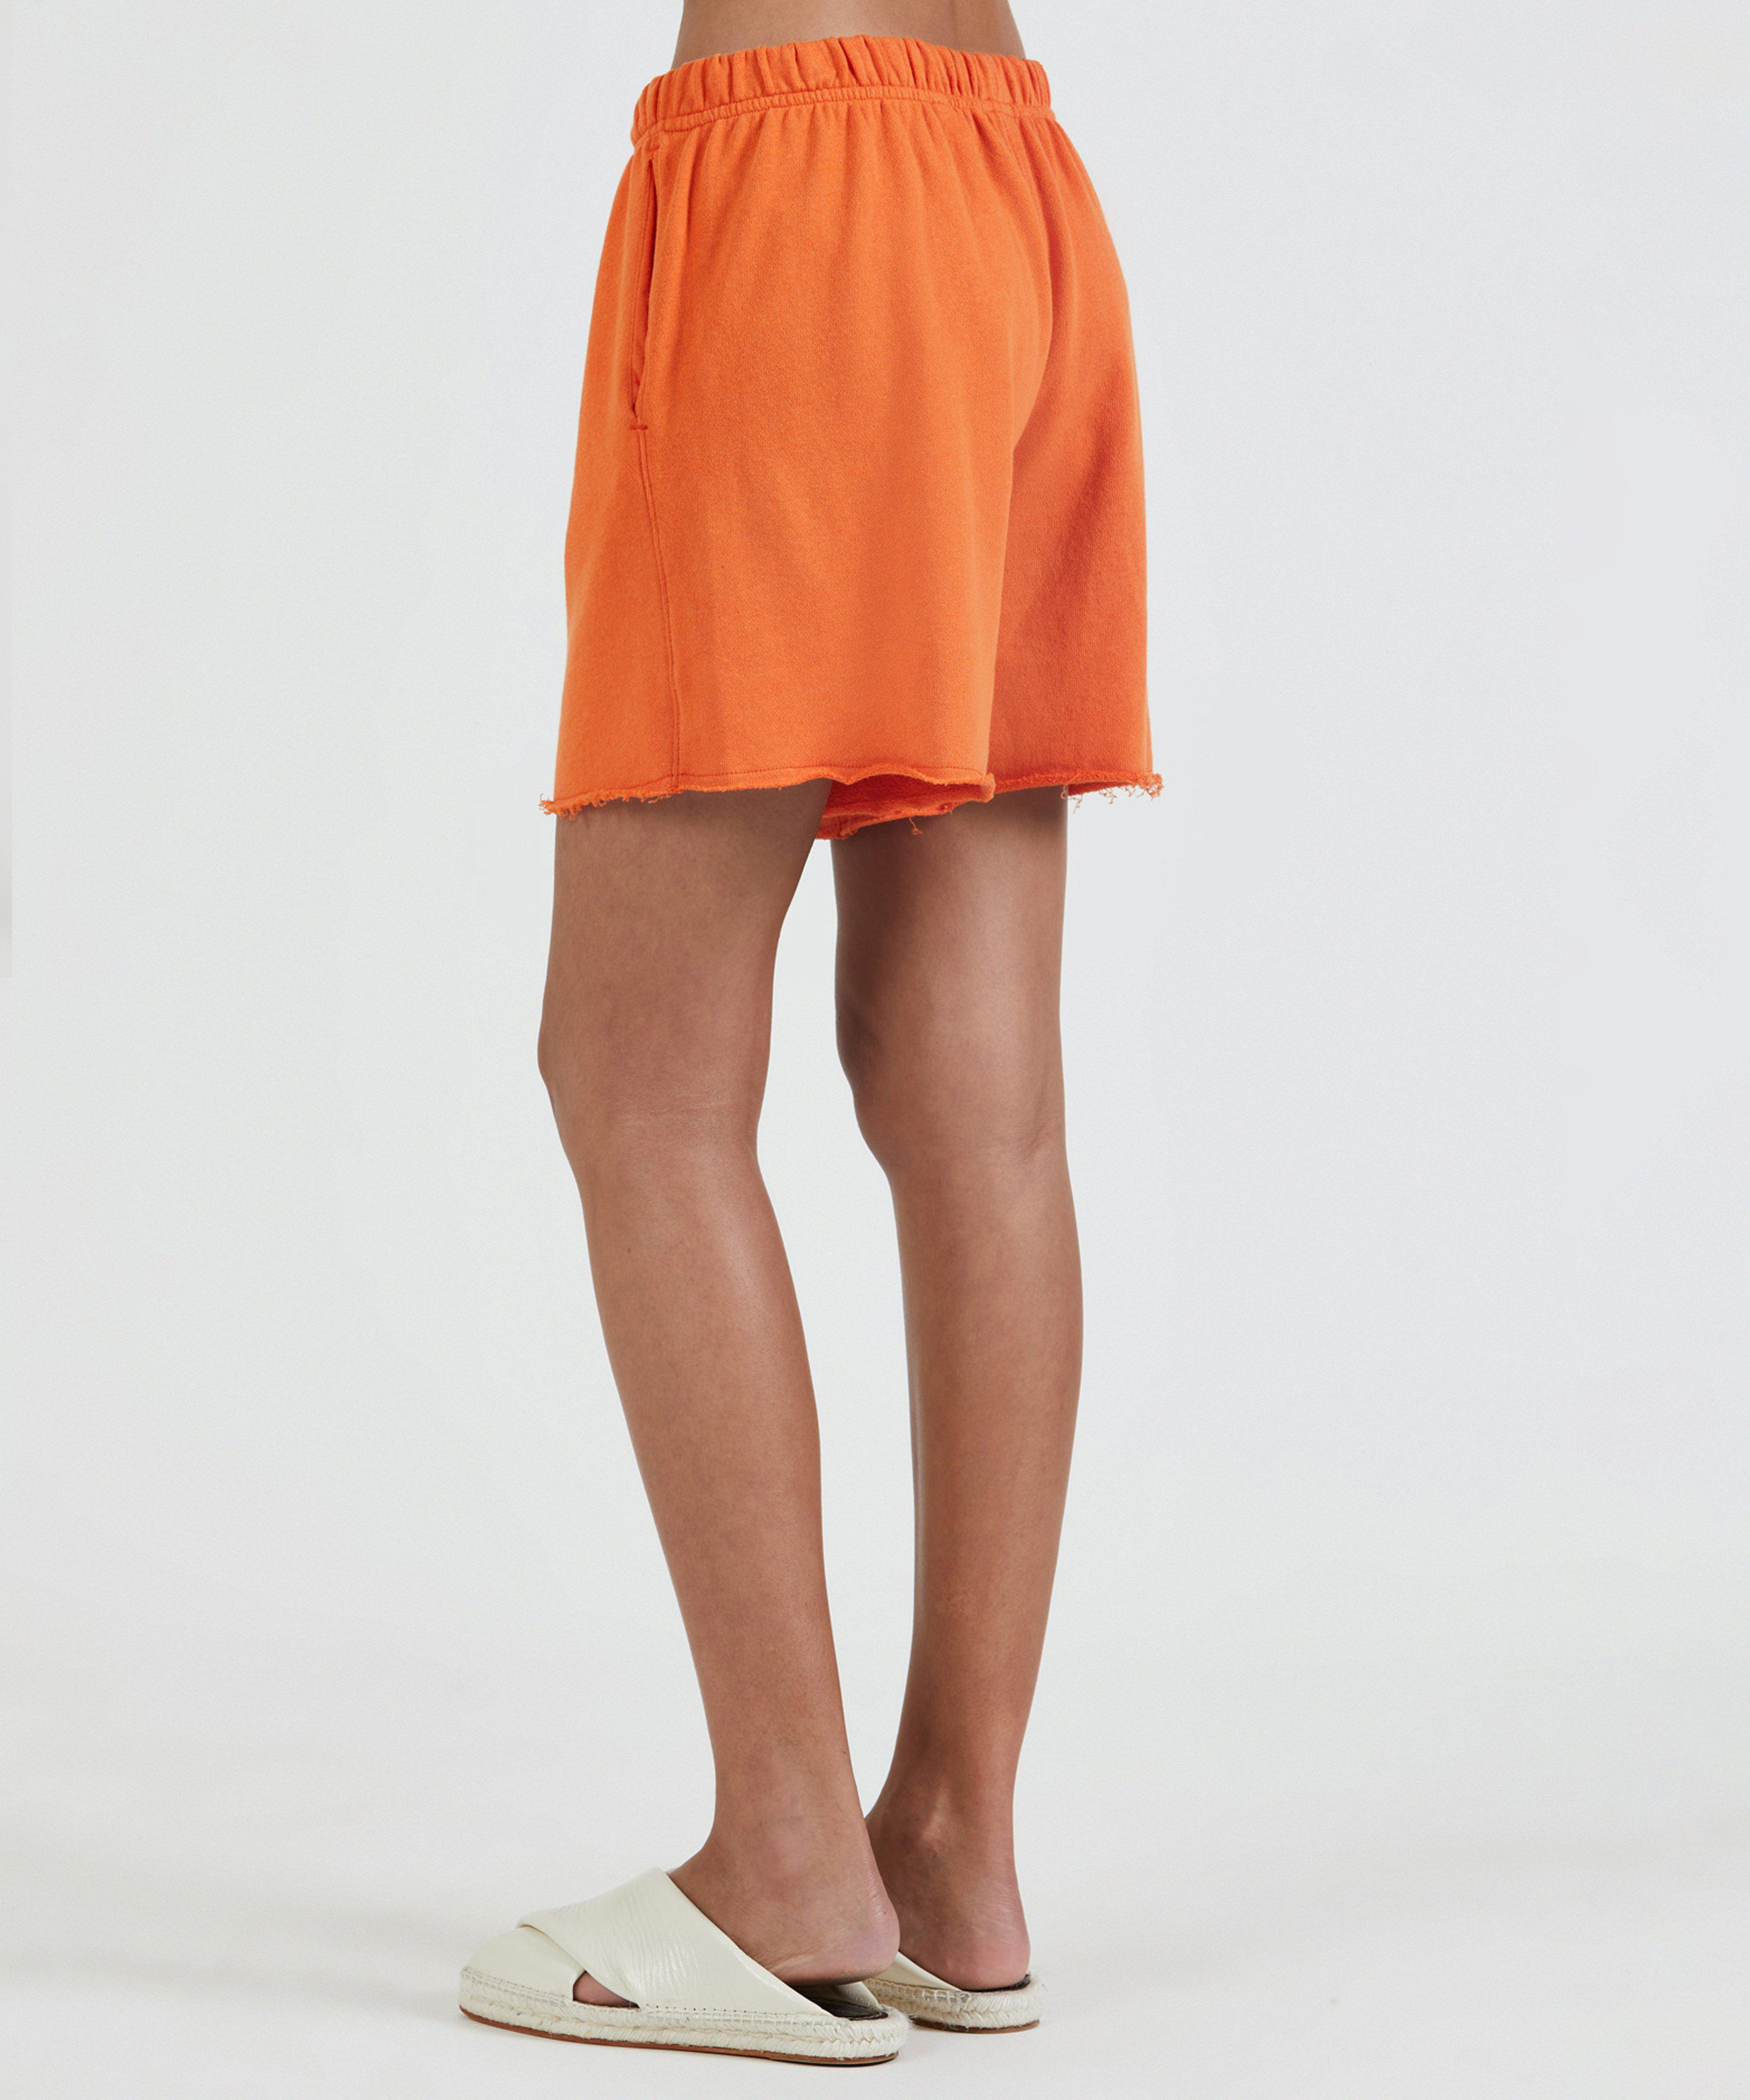 French Terry Pull-On Short - Clementine 2